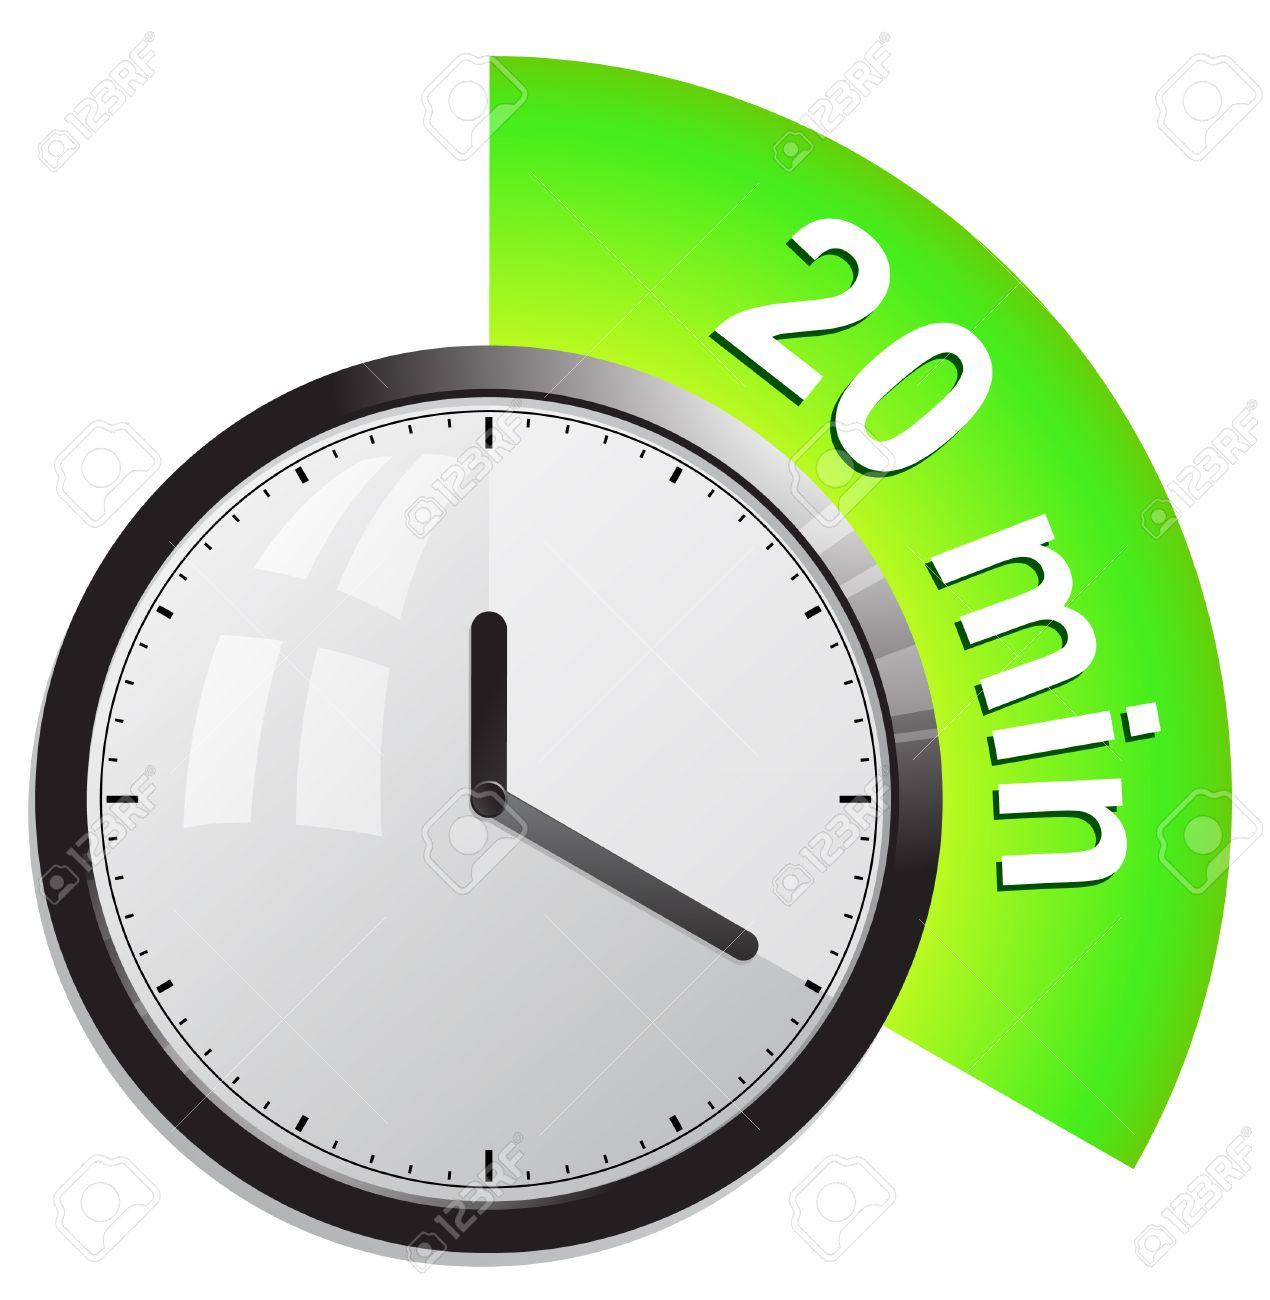 Clock timer 20 minutes royalty free cliparts vectors and stock clock timer 20 minutes stock vector 28133890 publicscrutiny Image collections